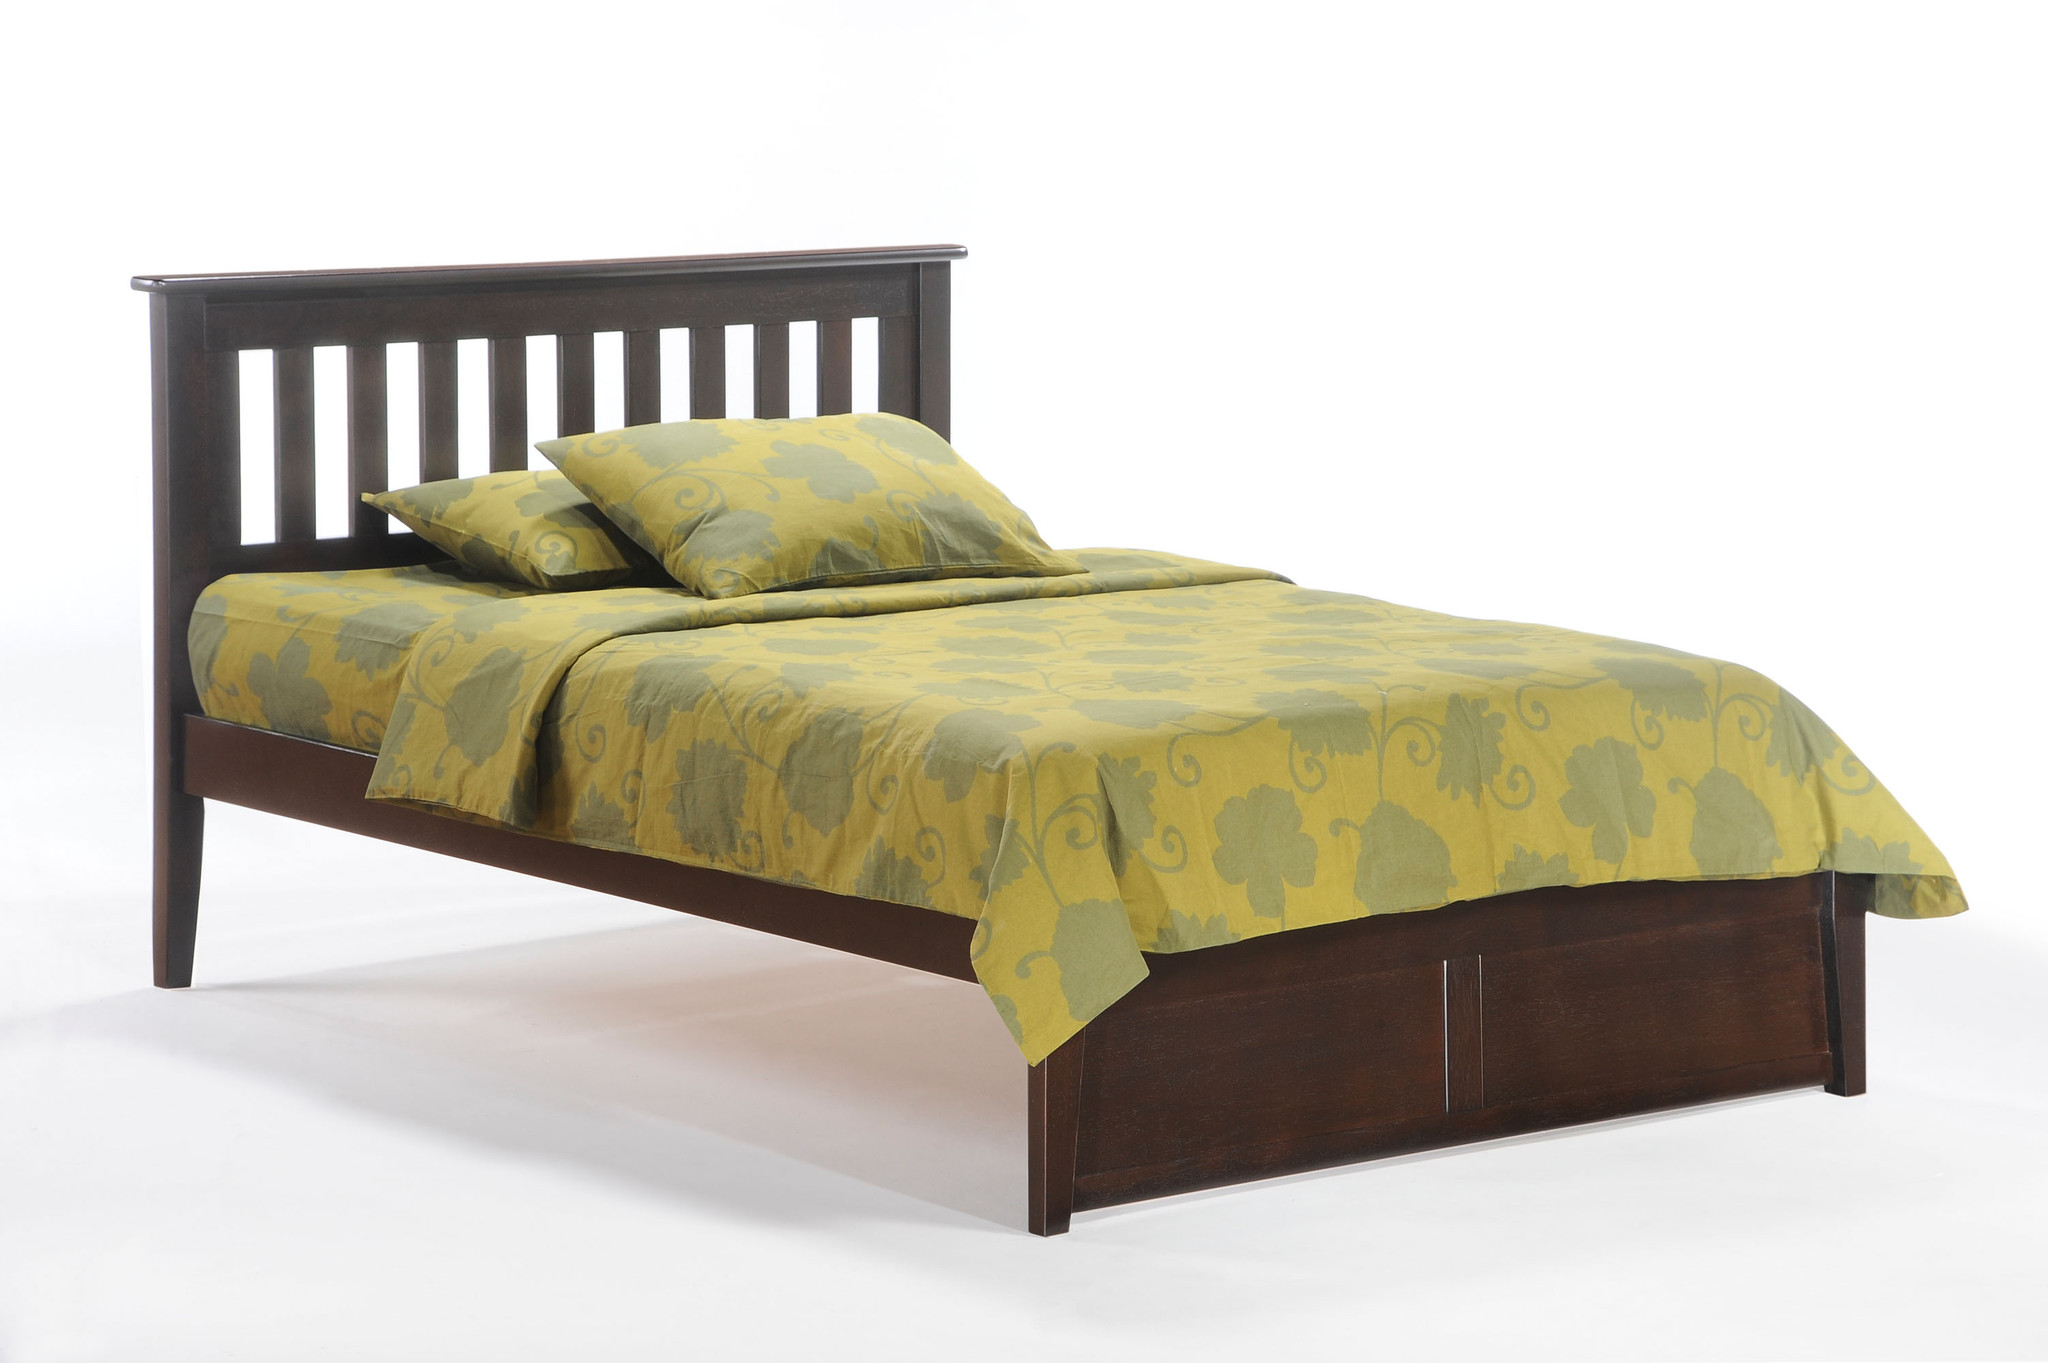 store sofa harley bed beds speakers bedroomdiscounters with futon foa austin futons